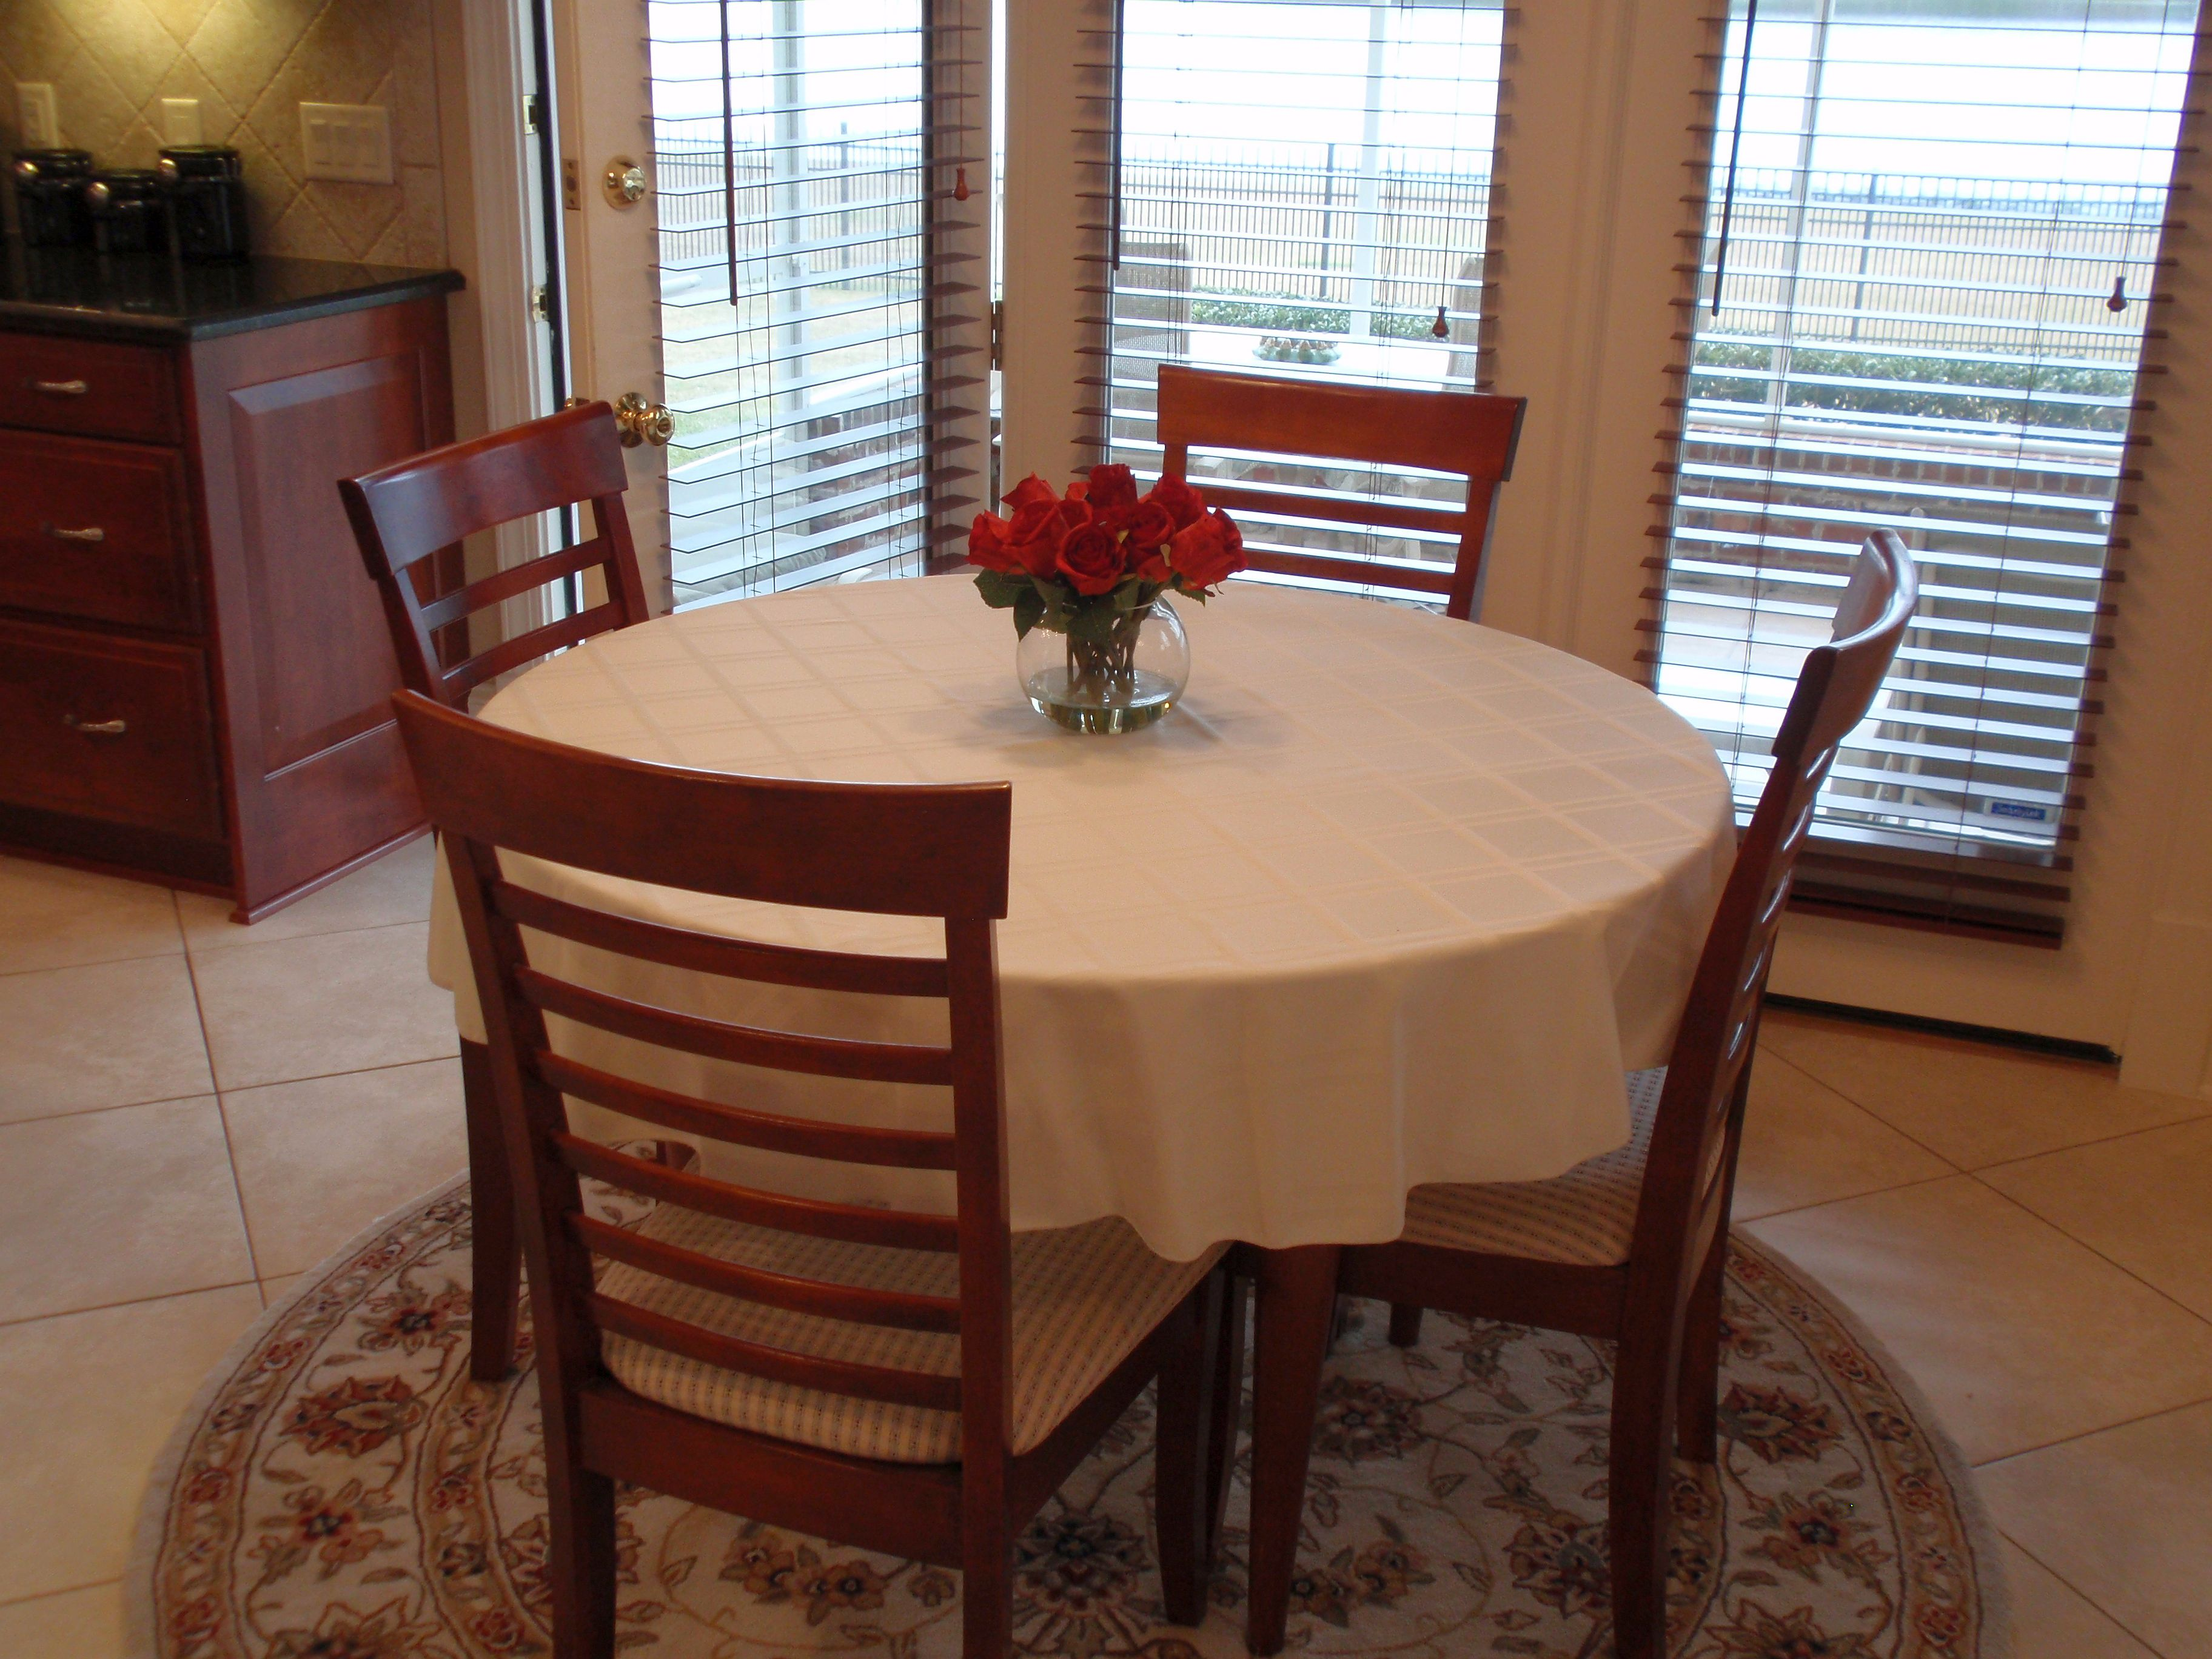 Eat In Kitchen Tallahassee, Florida Home For Sale